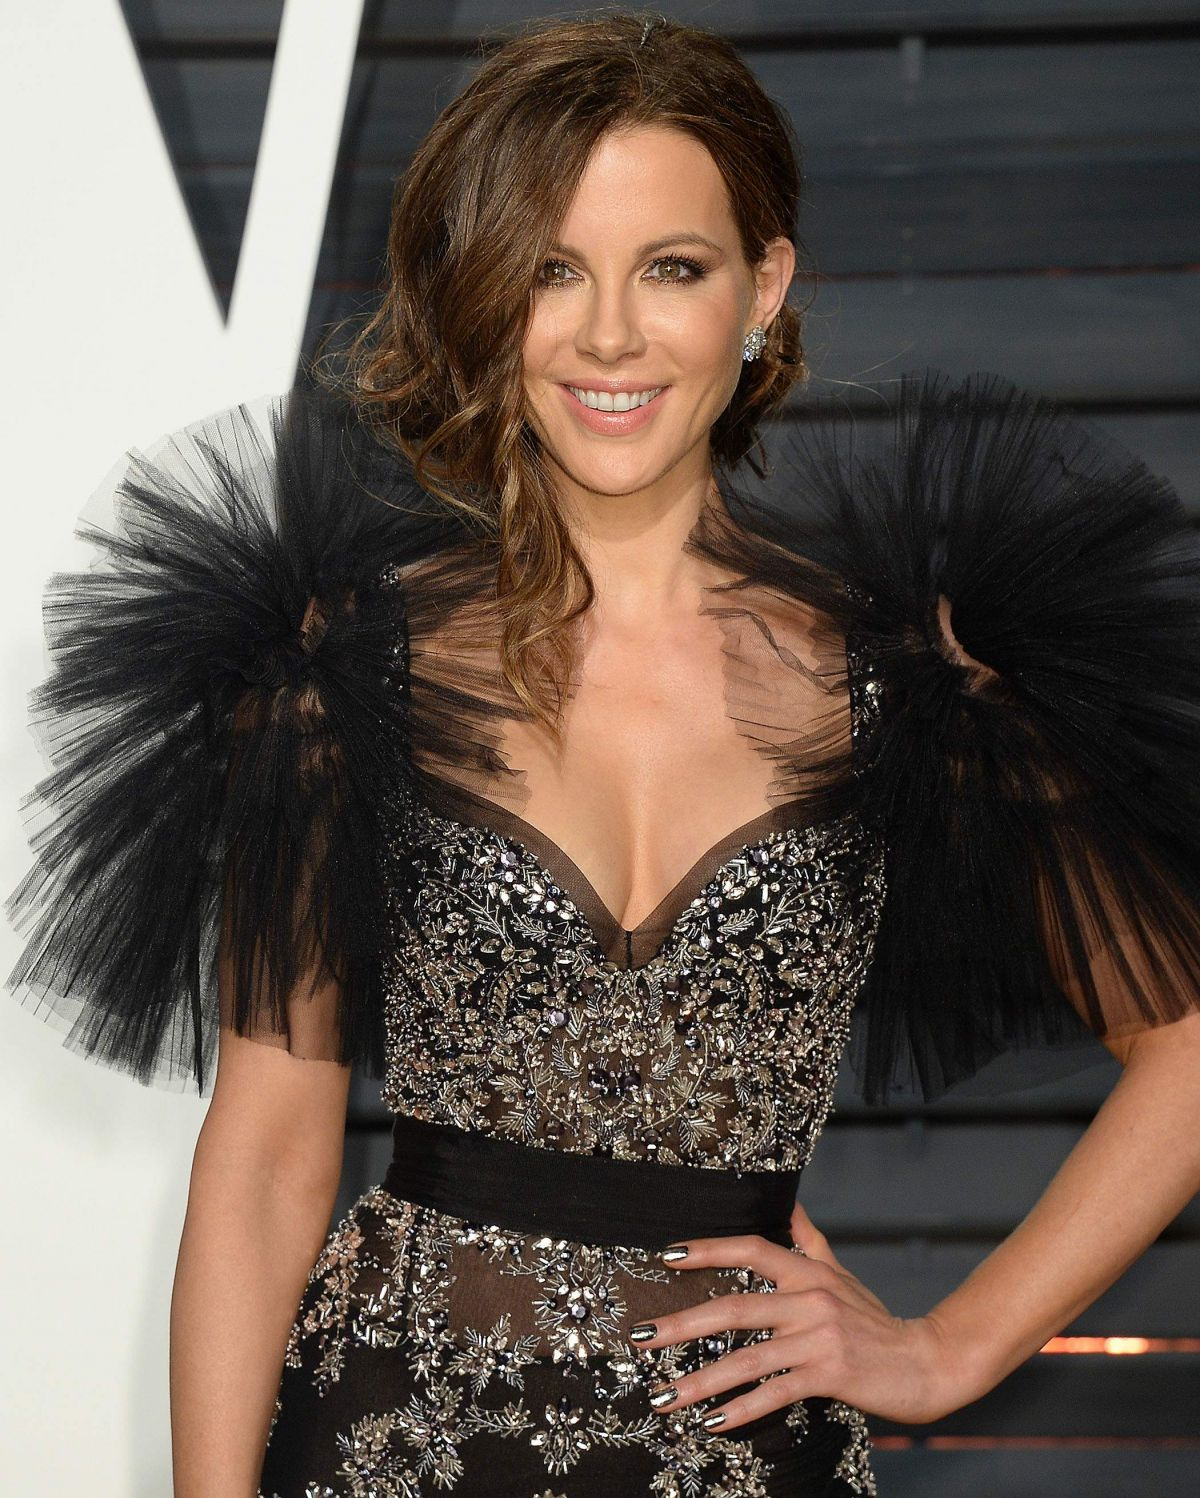 KATE BECKINSALE At 2017 Vanity Fair Oscar Party In Beverly